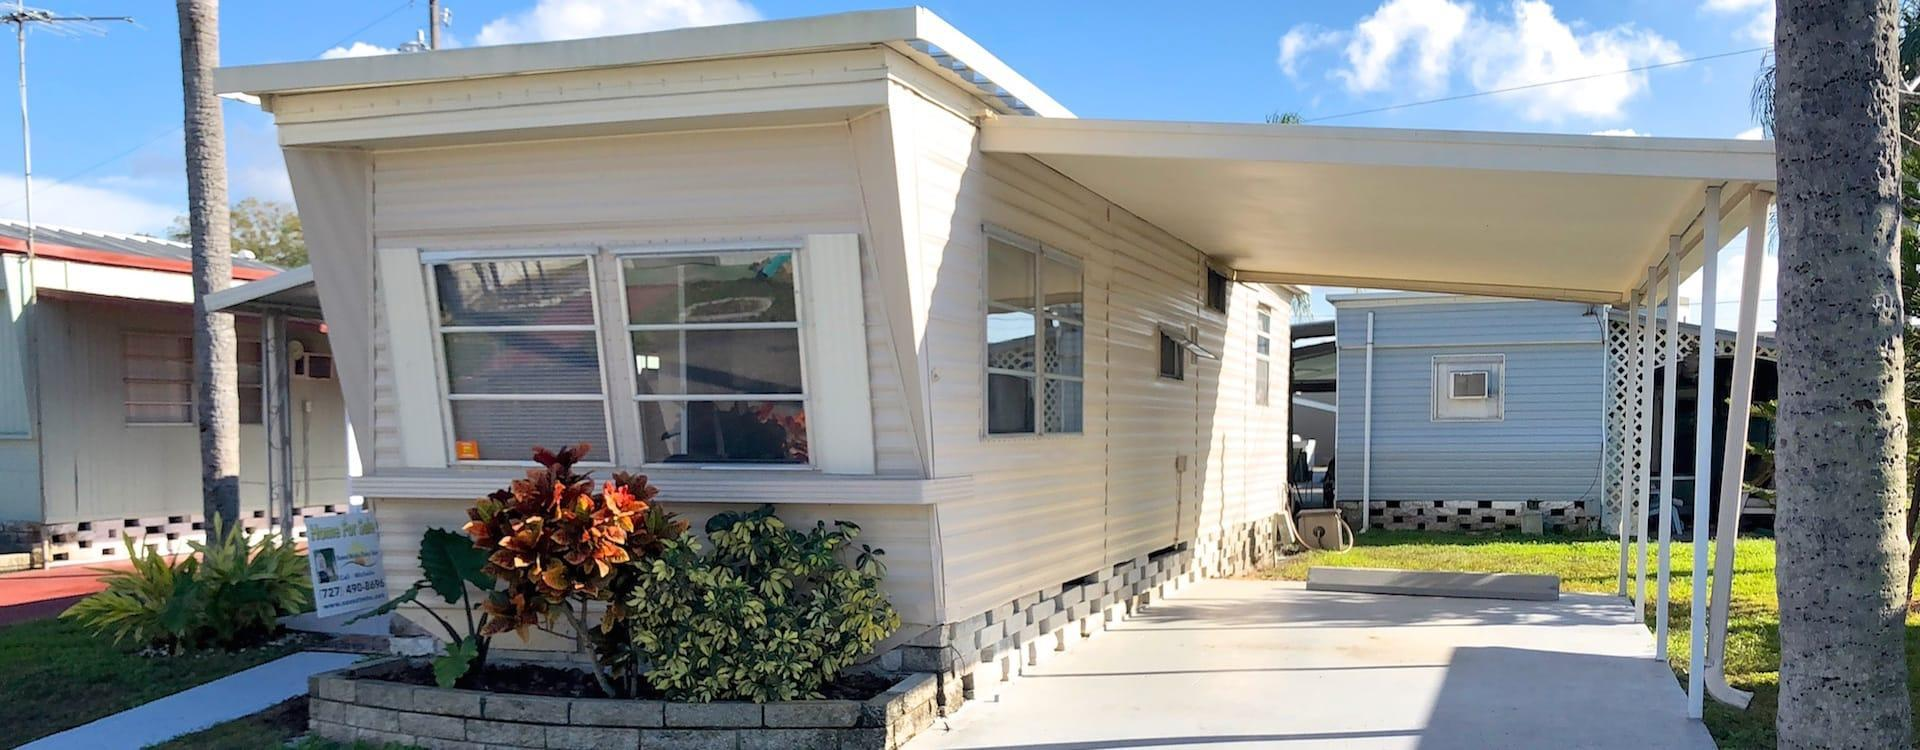 Mobile Home For Sale Clearwater Fl Twin Palms 221